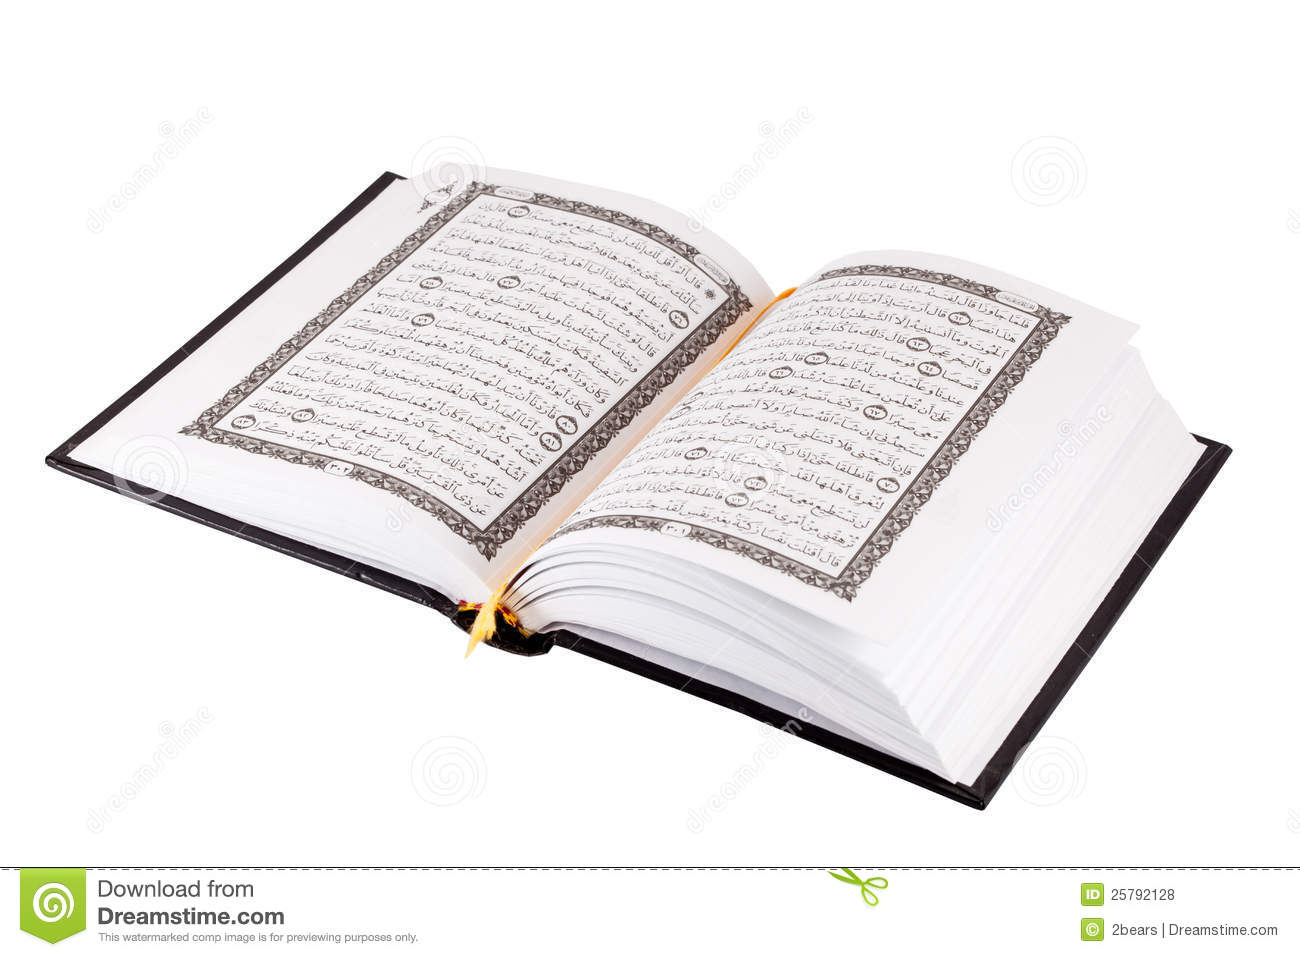 Clip Art of the Holy Quran.